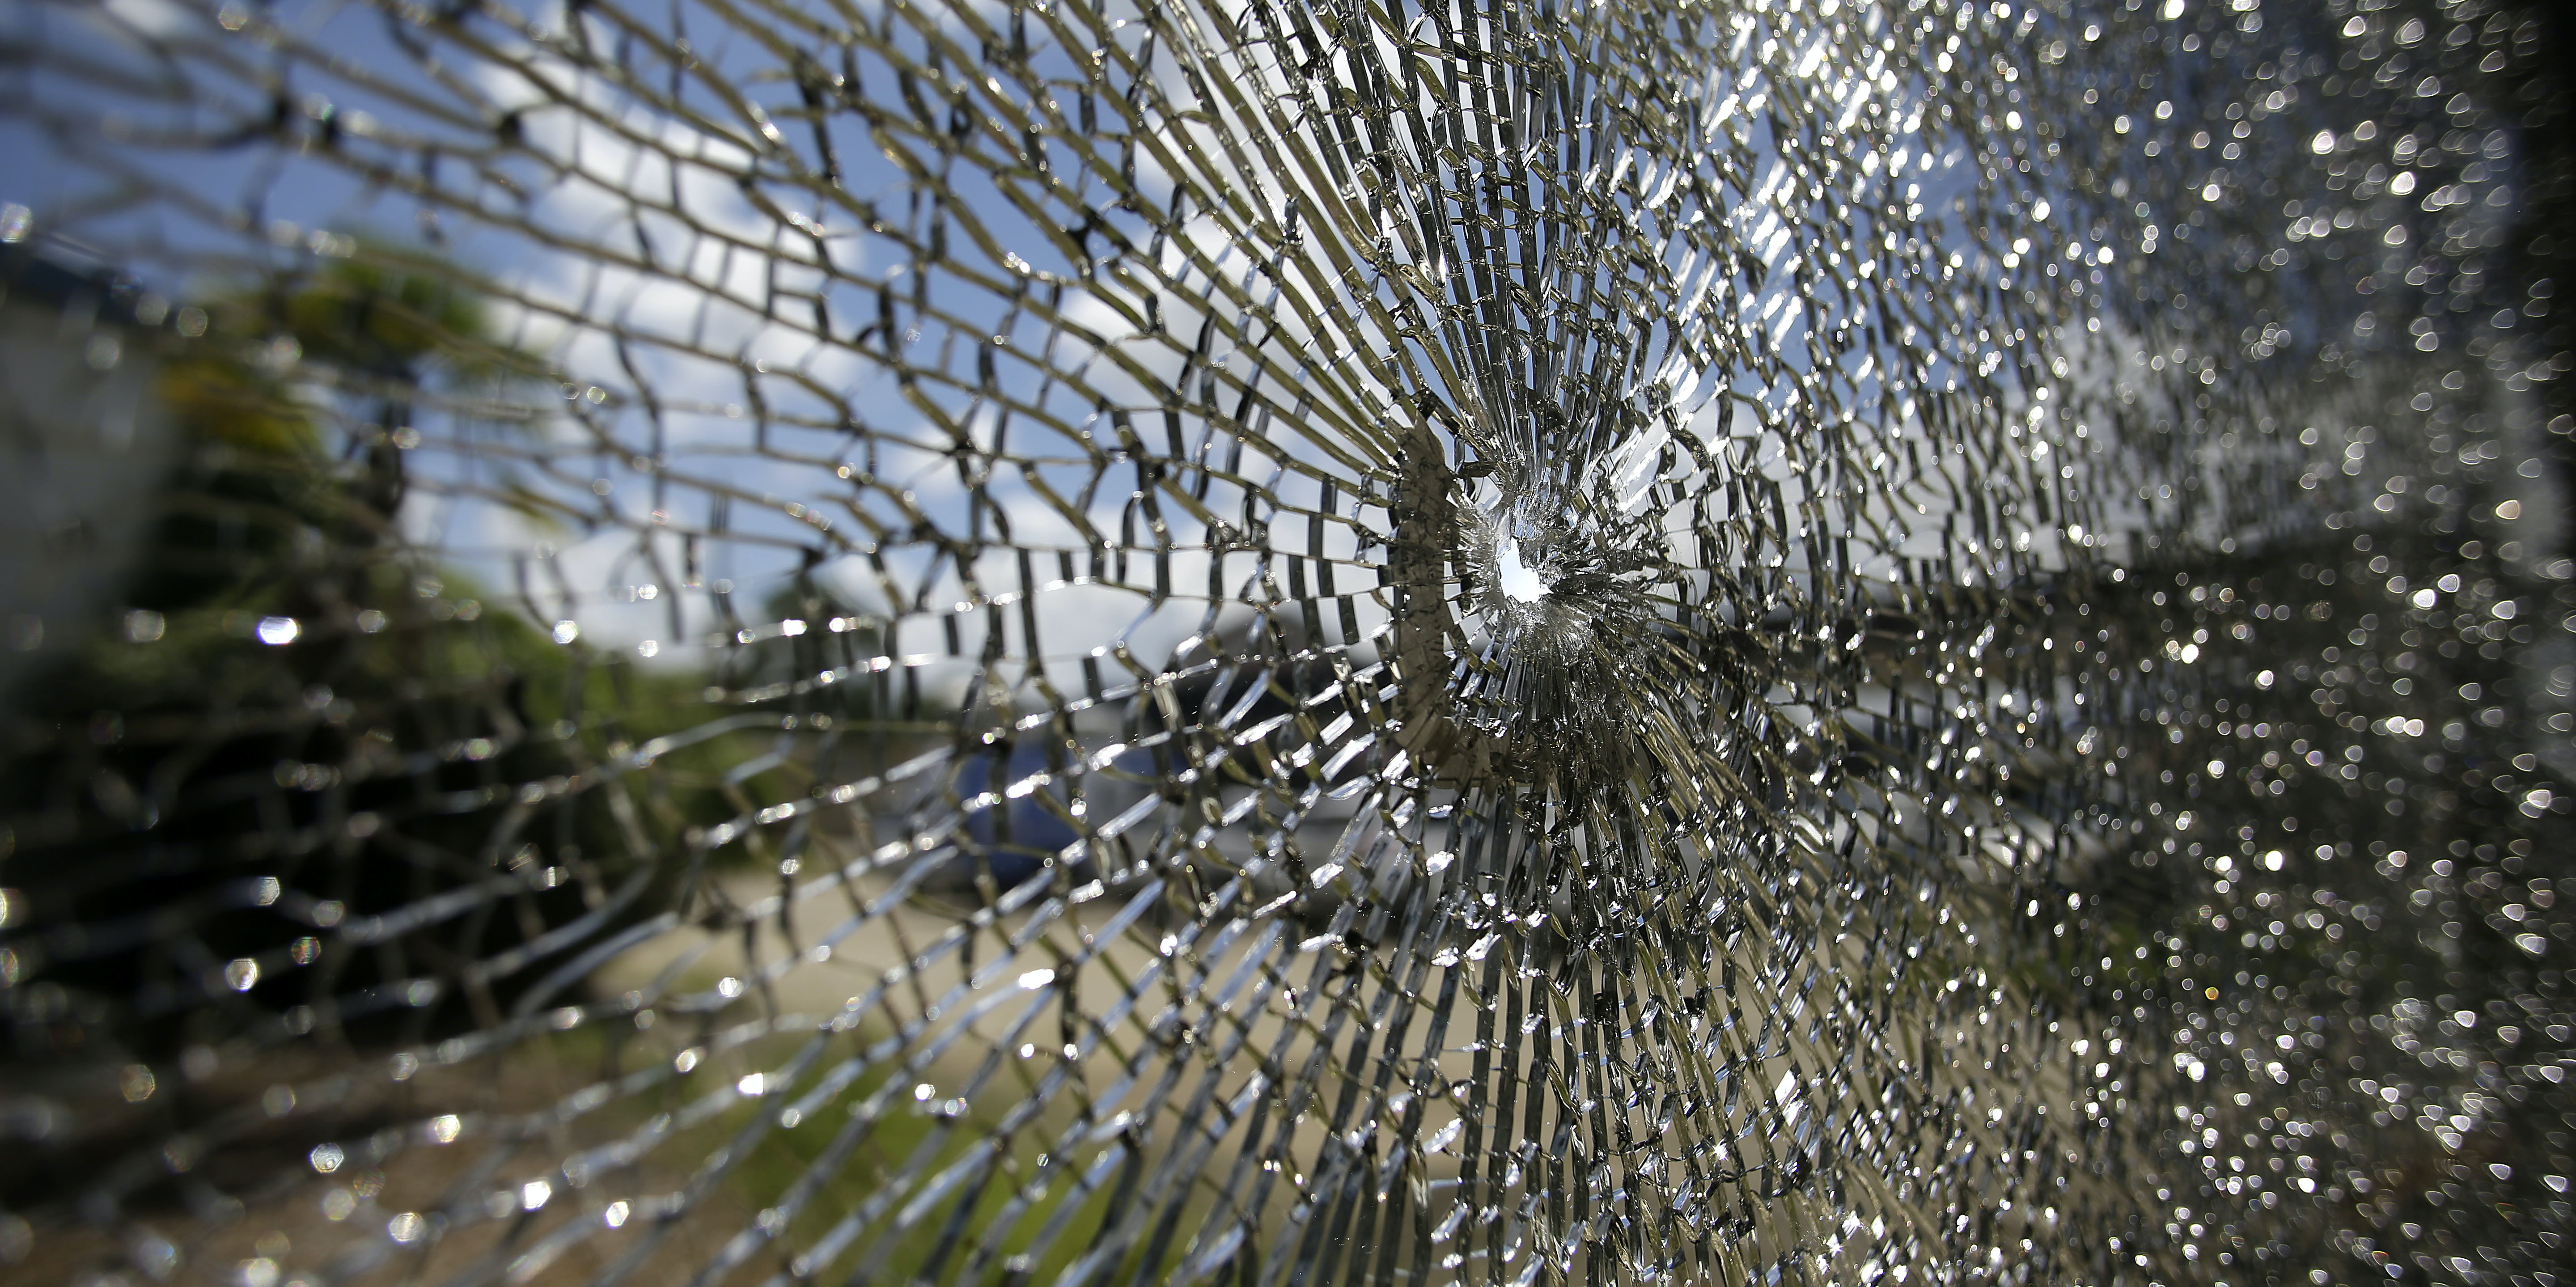 A bullet hole is seen in the window of the Fitness Expo on July 19, 2016 in Baton Rouge, Louisiana.